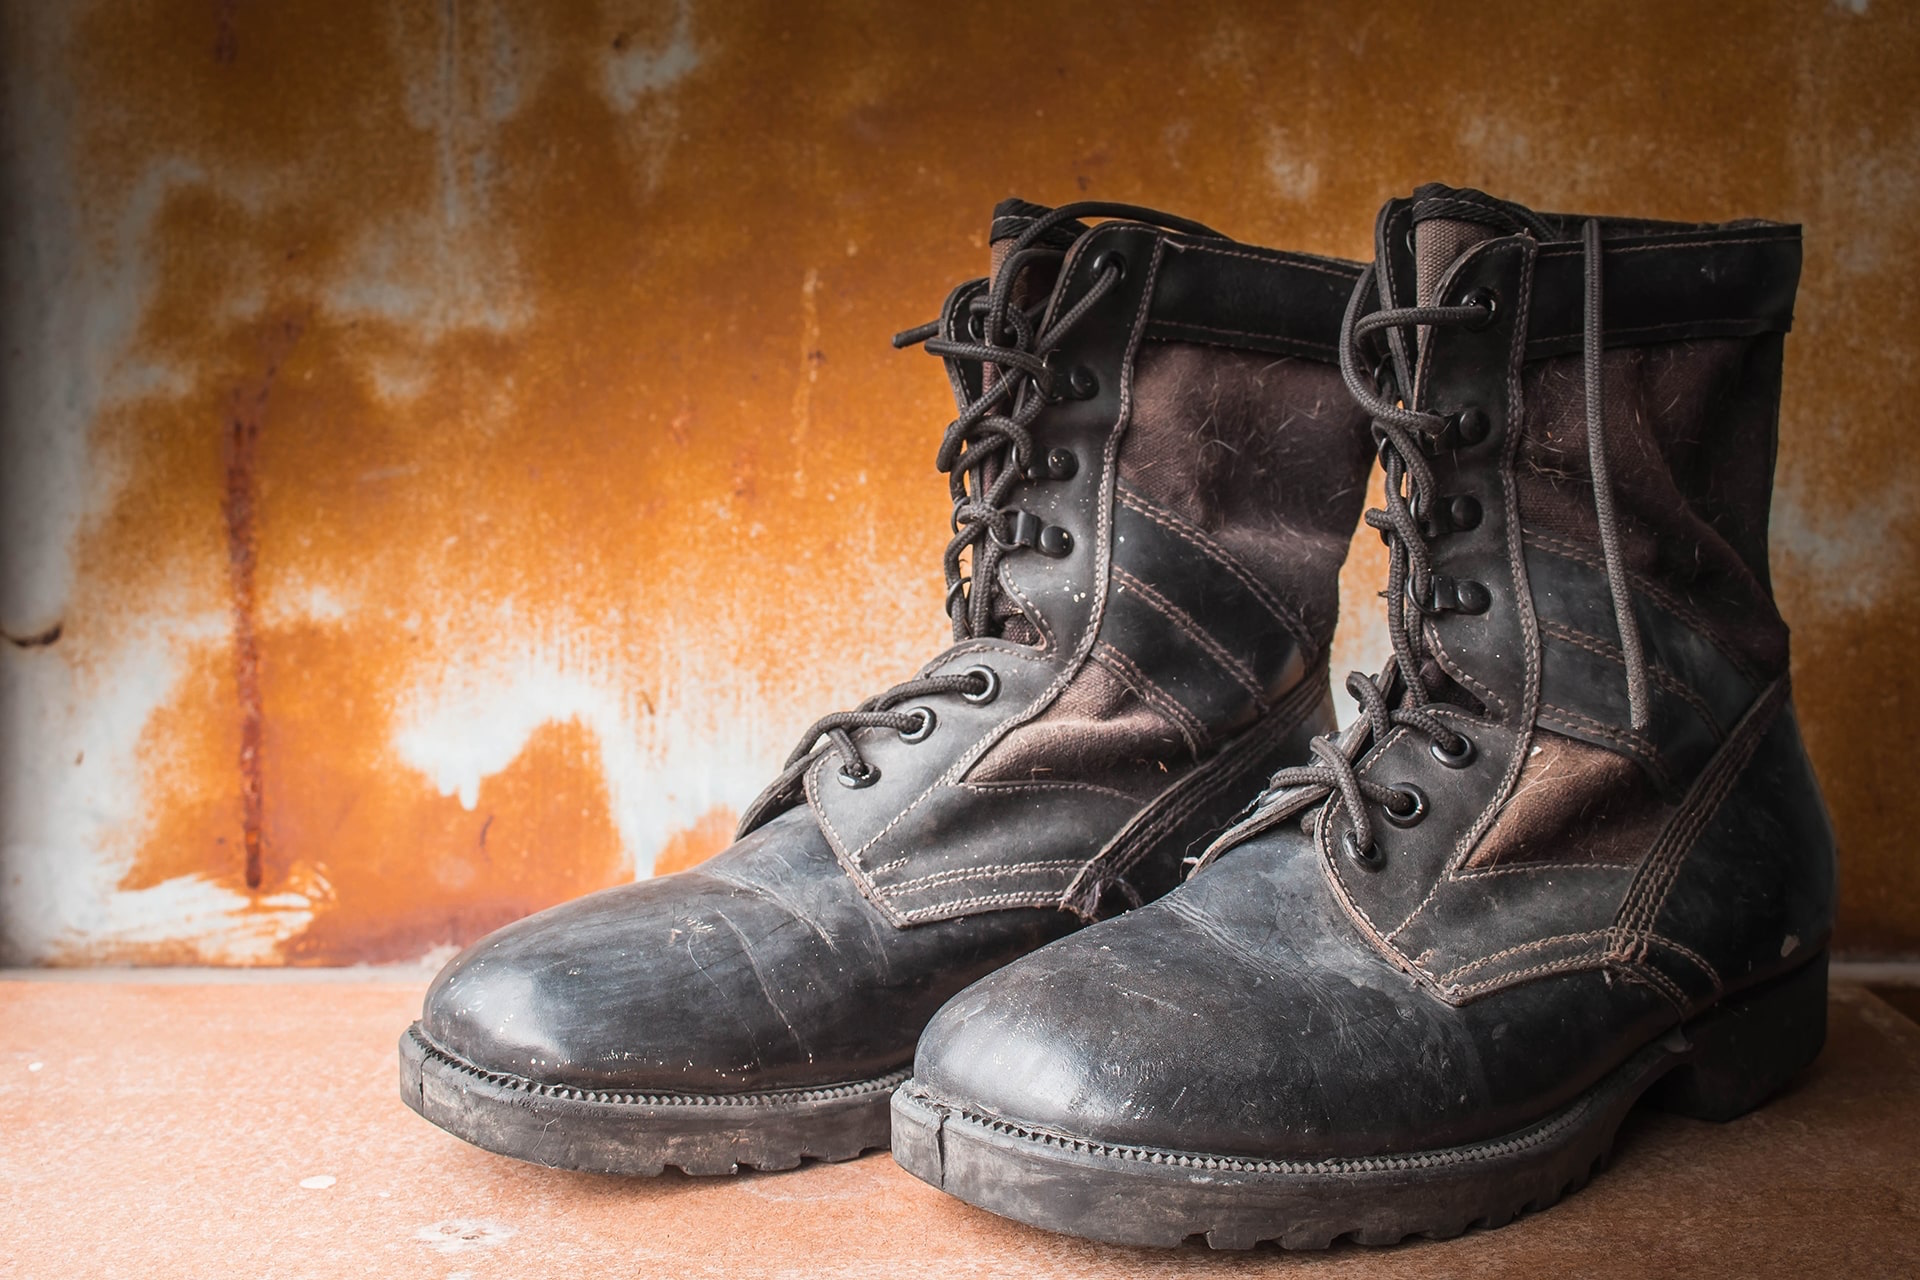 Old Black Leather Boots - SolVibrations